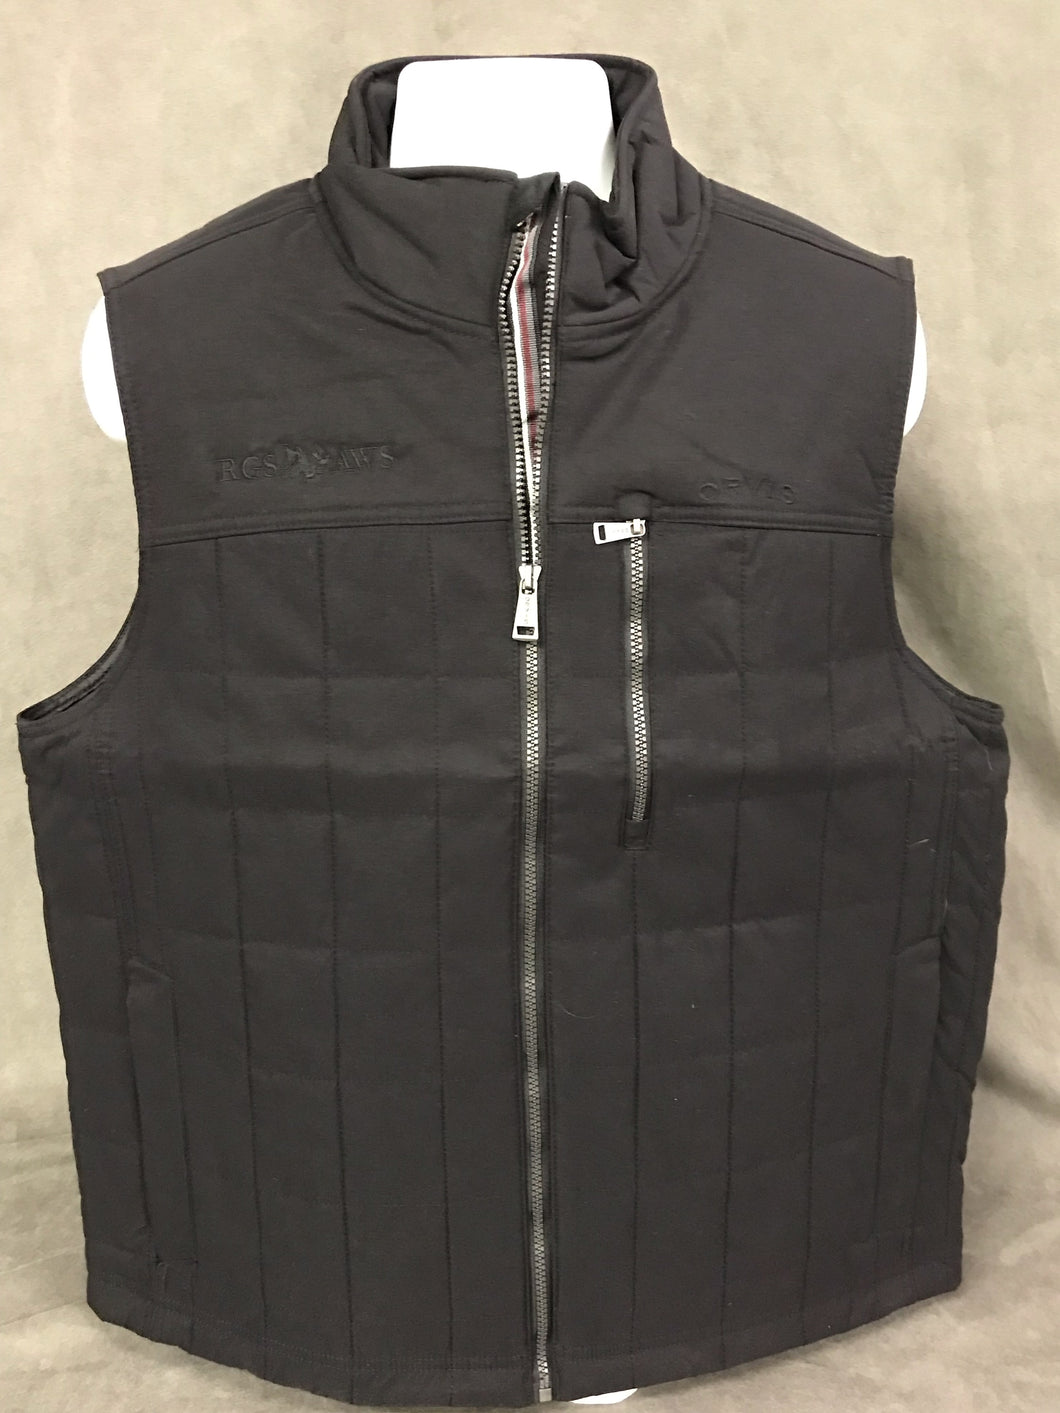 Orvis Vest: Black with Tone On Tone RGS/AWS Logo; Size Large